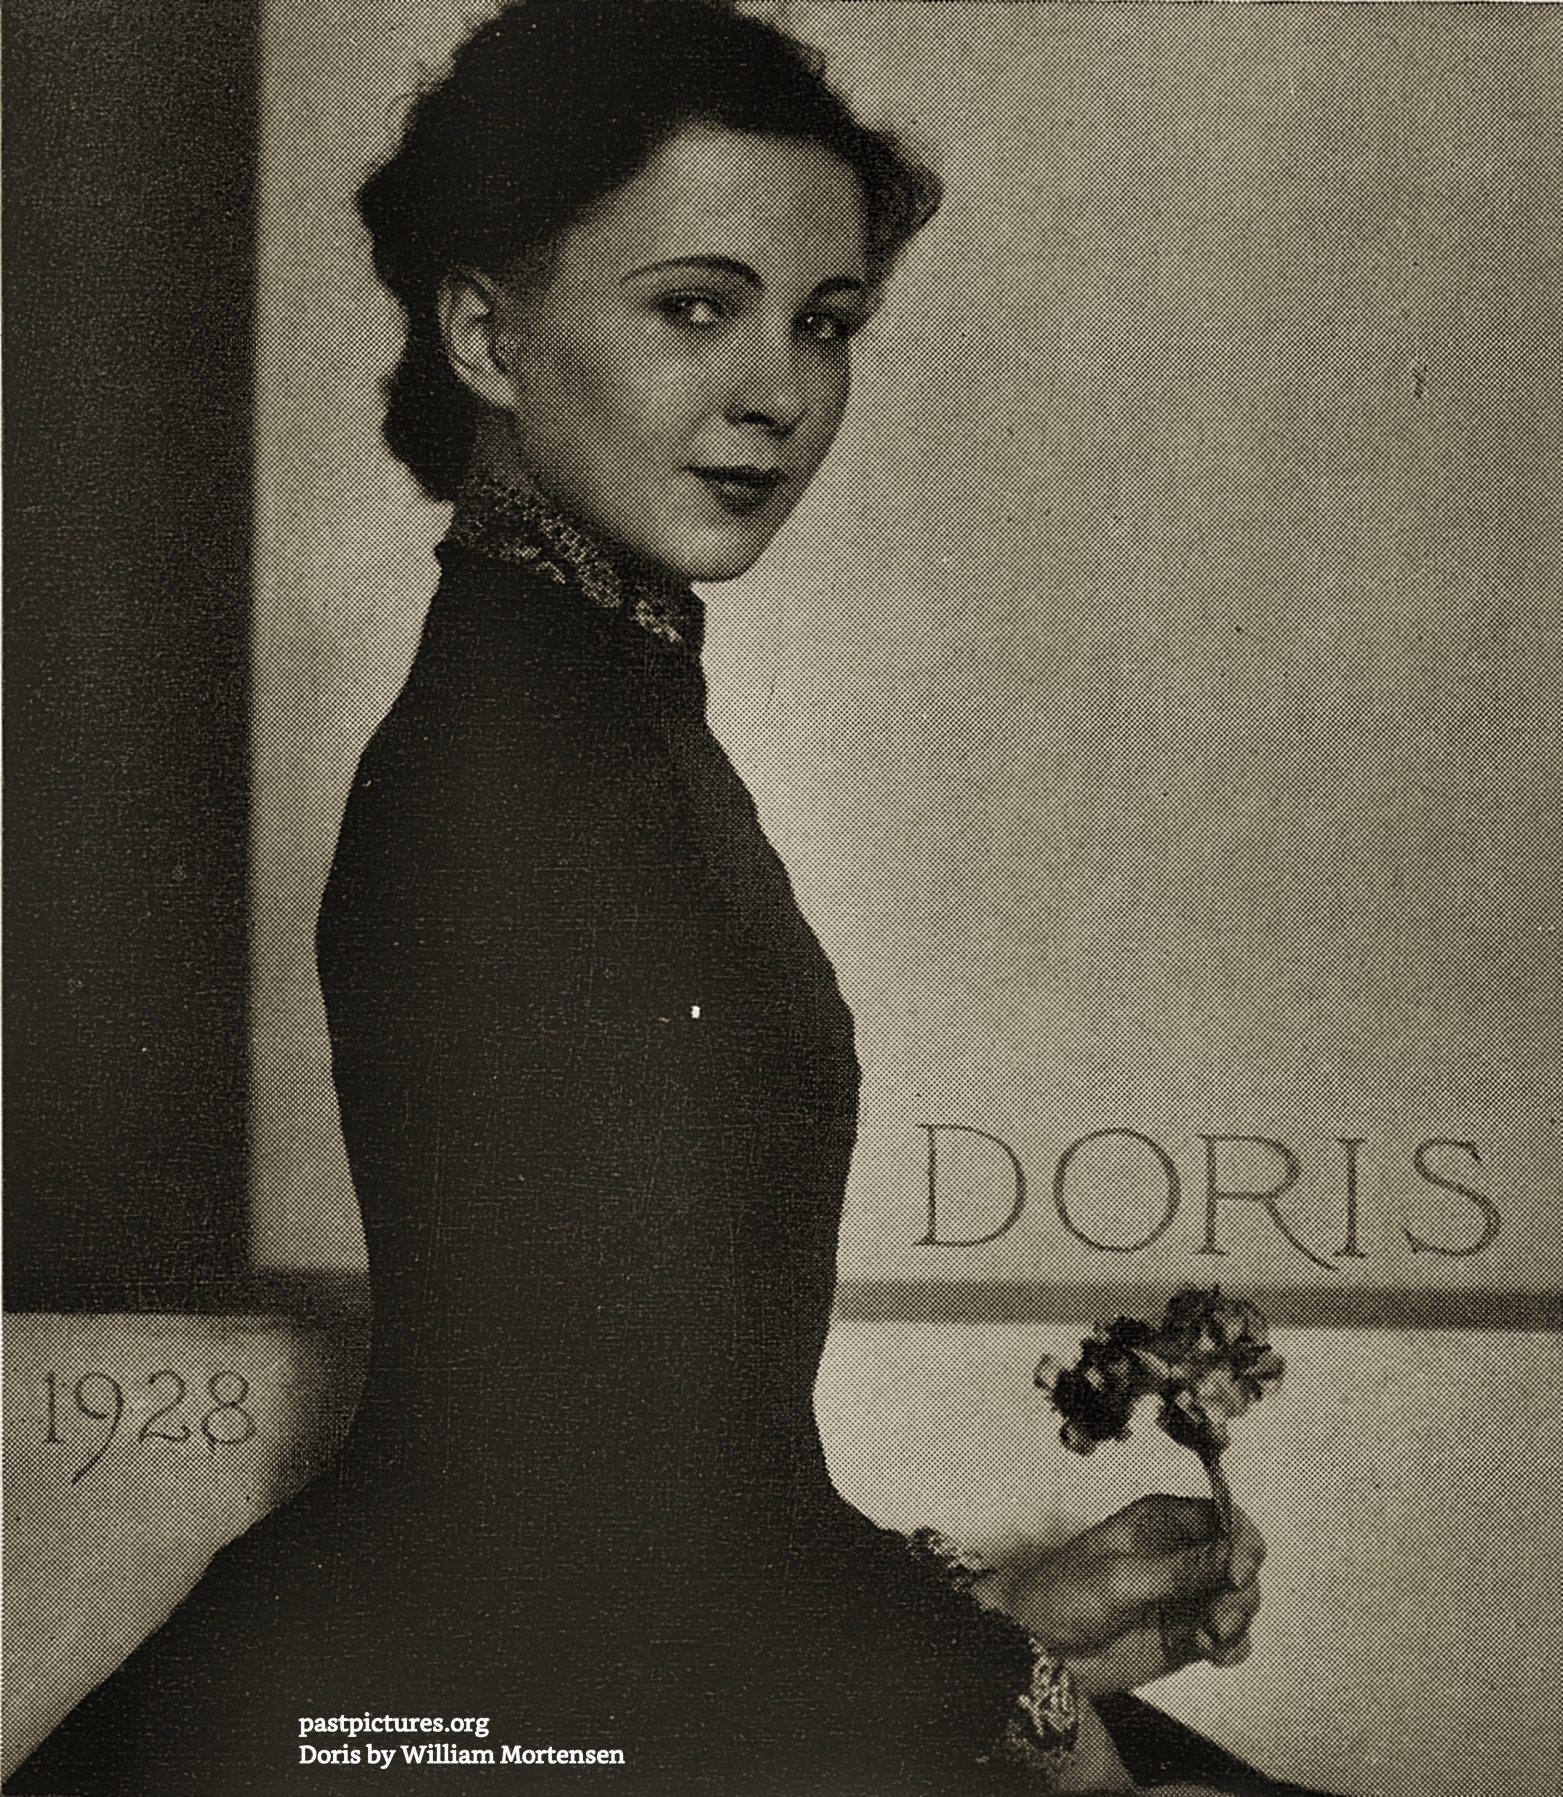 Doris by William Mortensen 1928